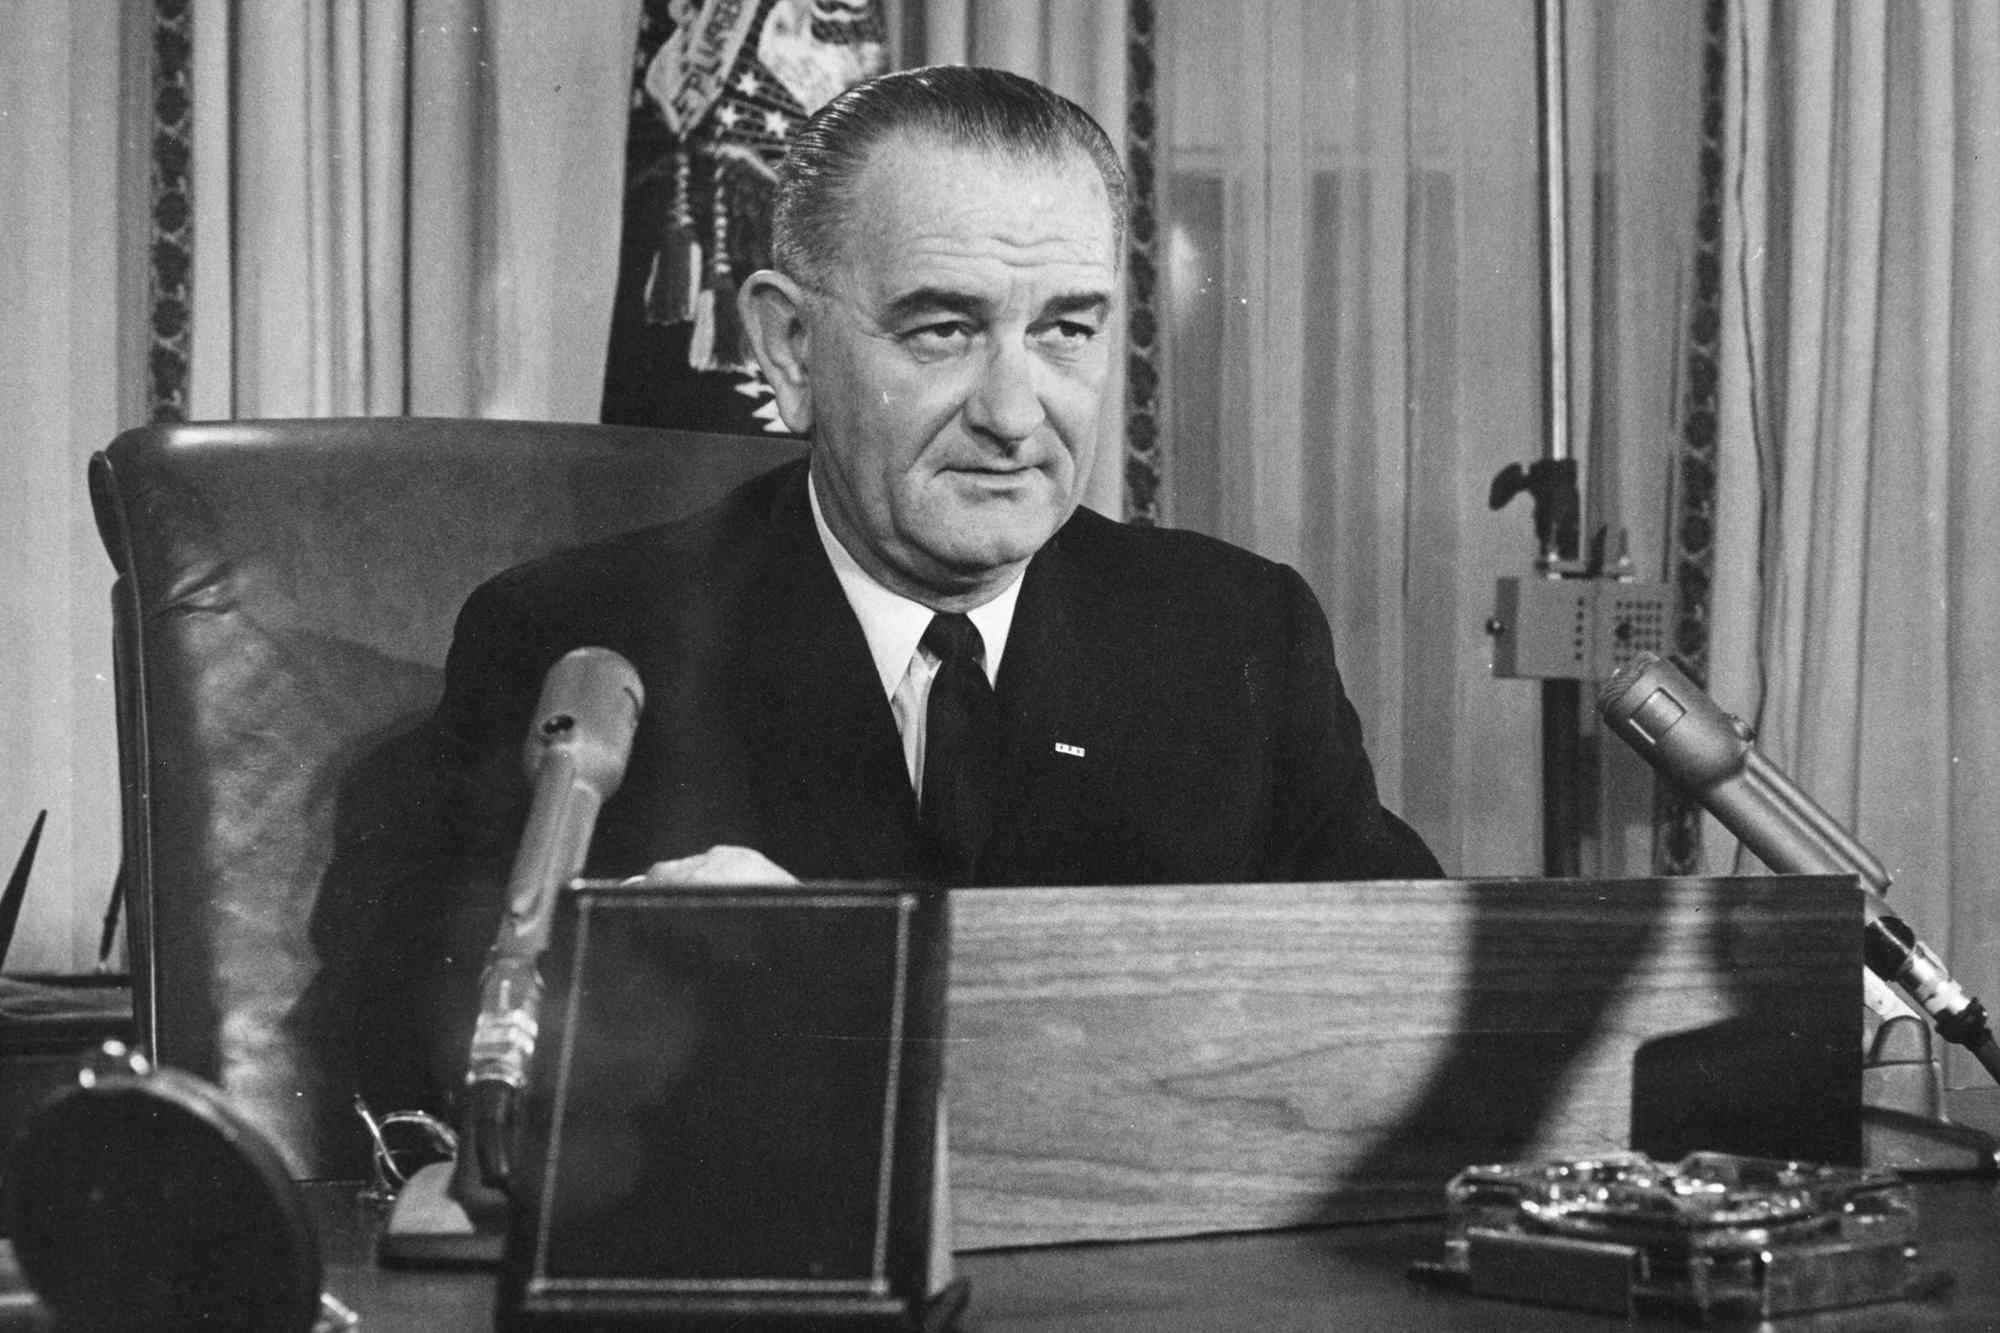 Black and white photo of LBJ speaking into multiple microphones.